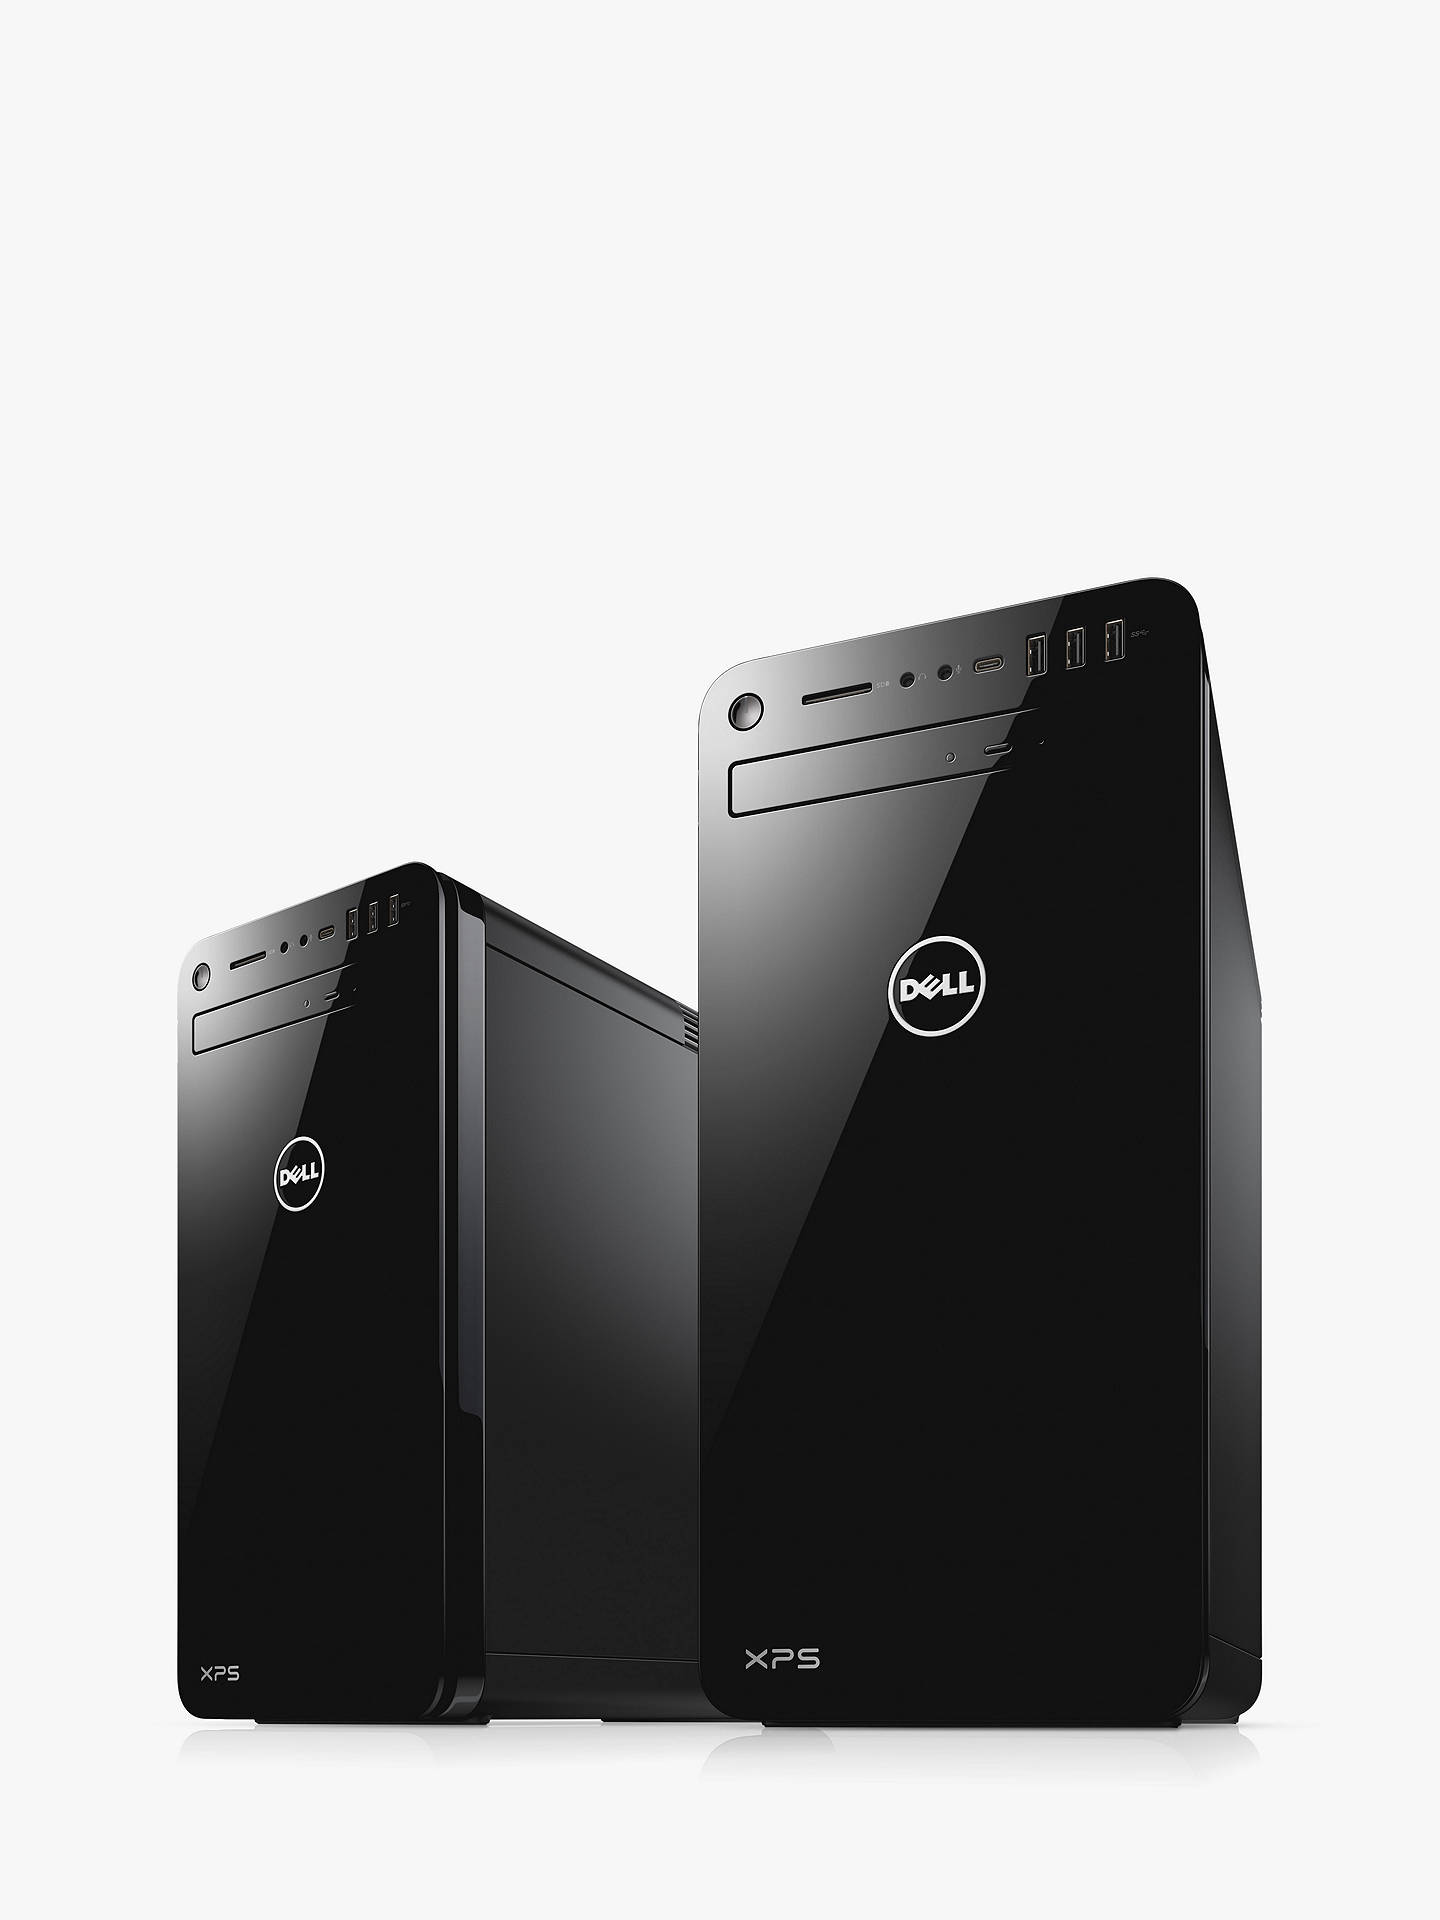 Miraculous Dell Xps 8930 Gaming Pc Intel Core I7 Processor 16Gb Ram 2Tb Hdd 512Gb Ssd Geforce Rtx 2060 Black Download Free Architecture Designs Itiscsunscenecom